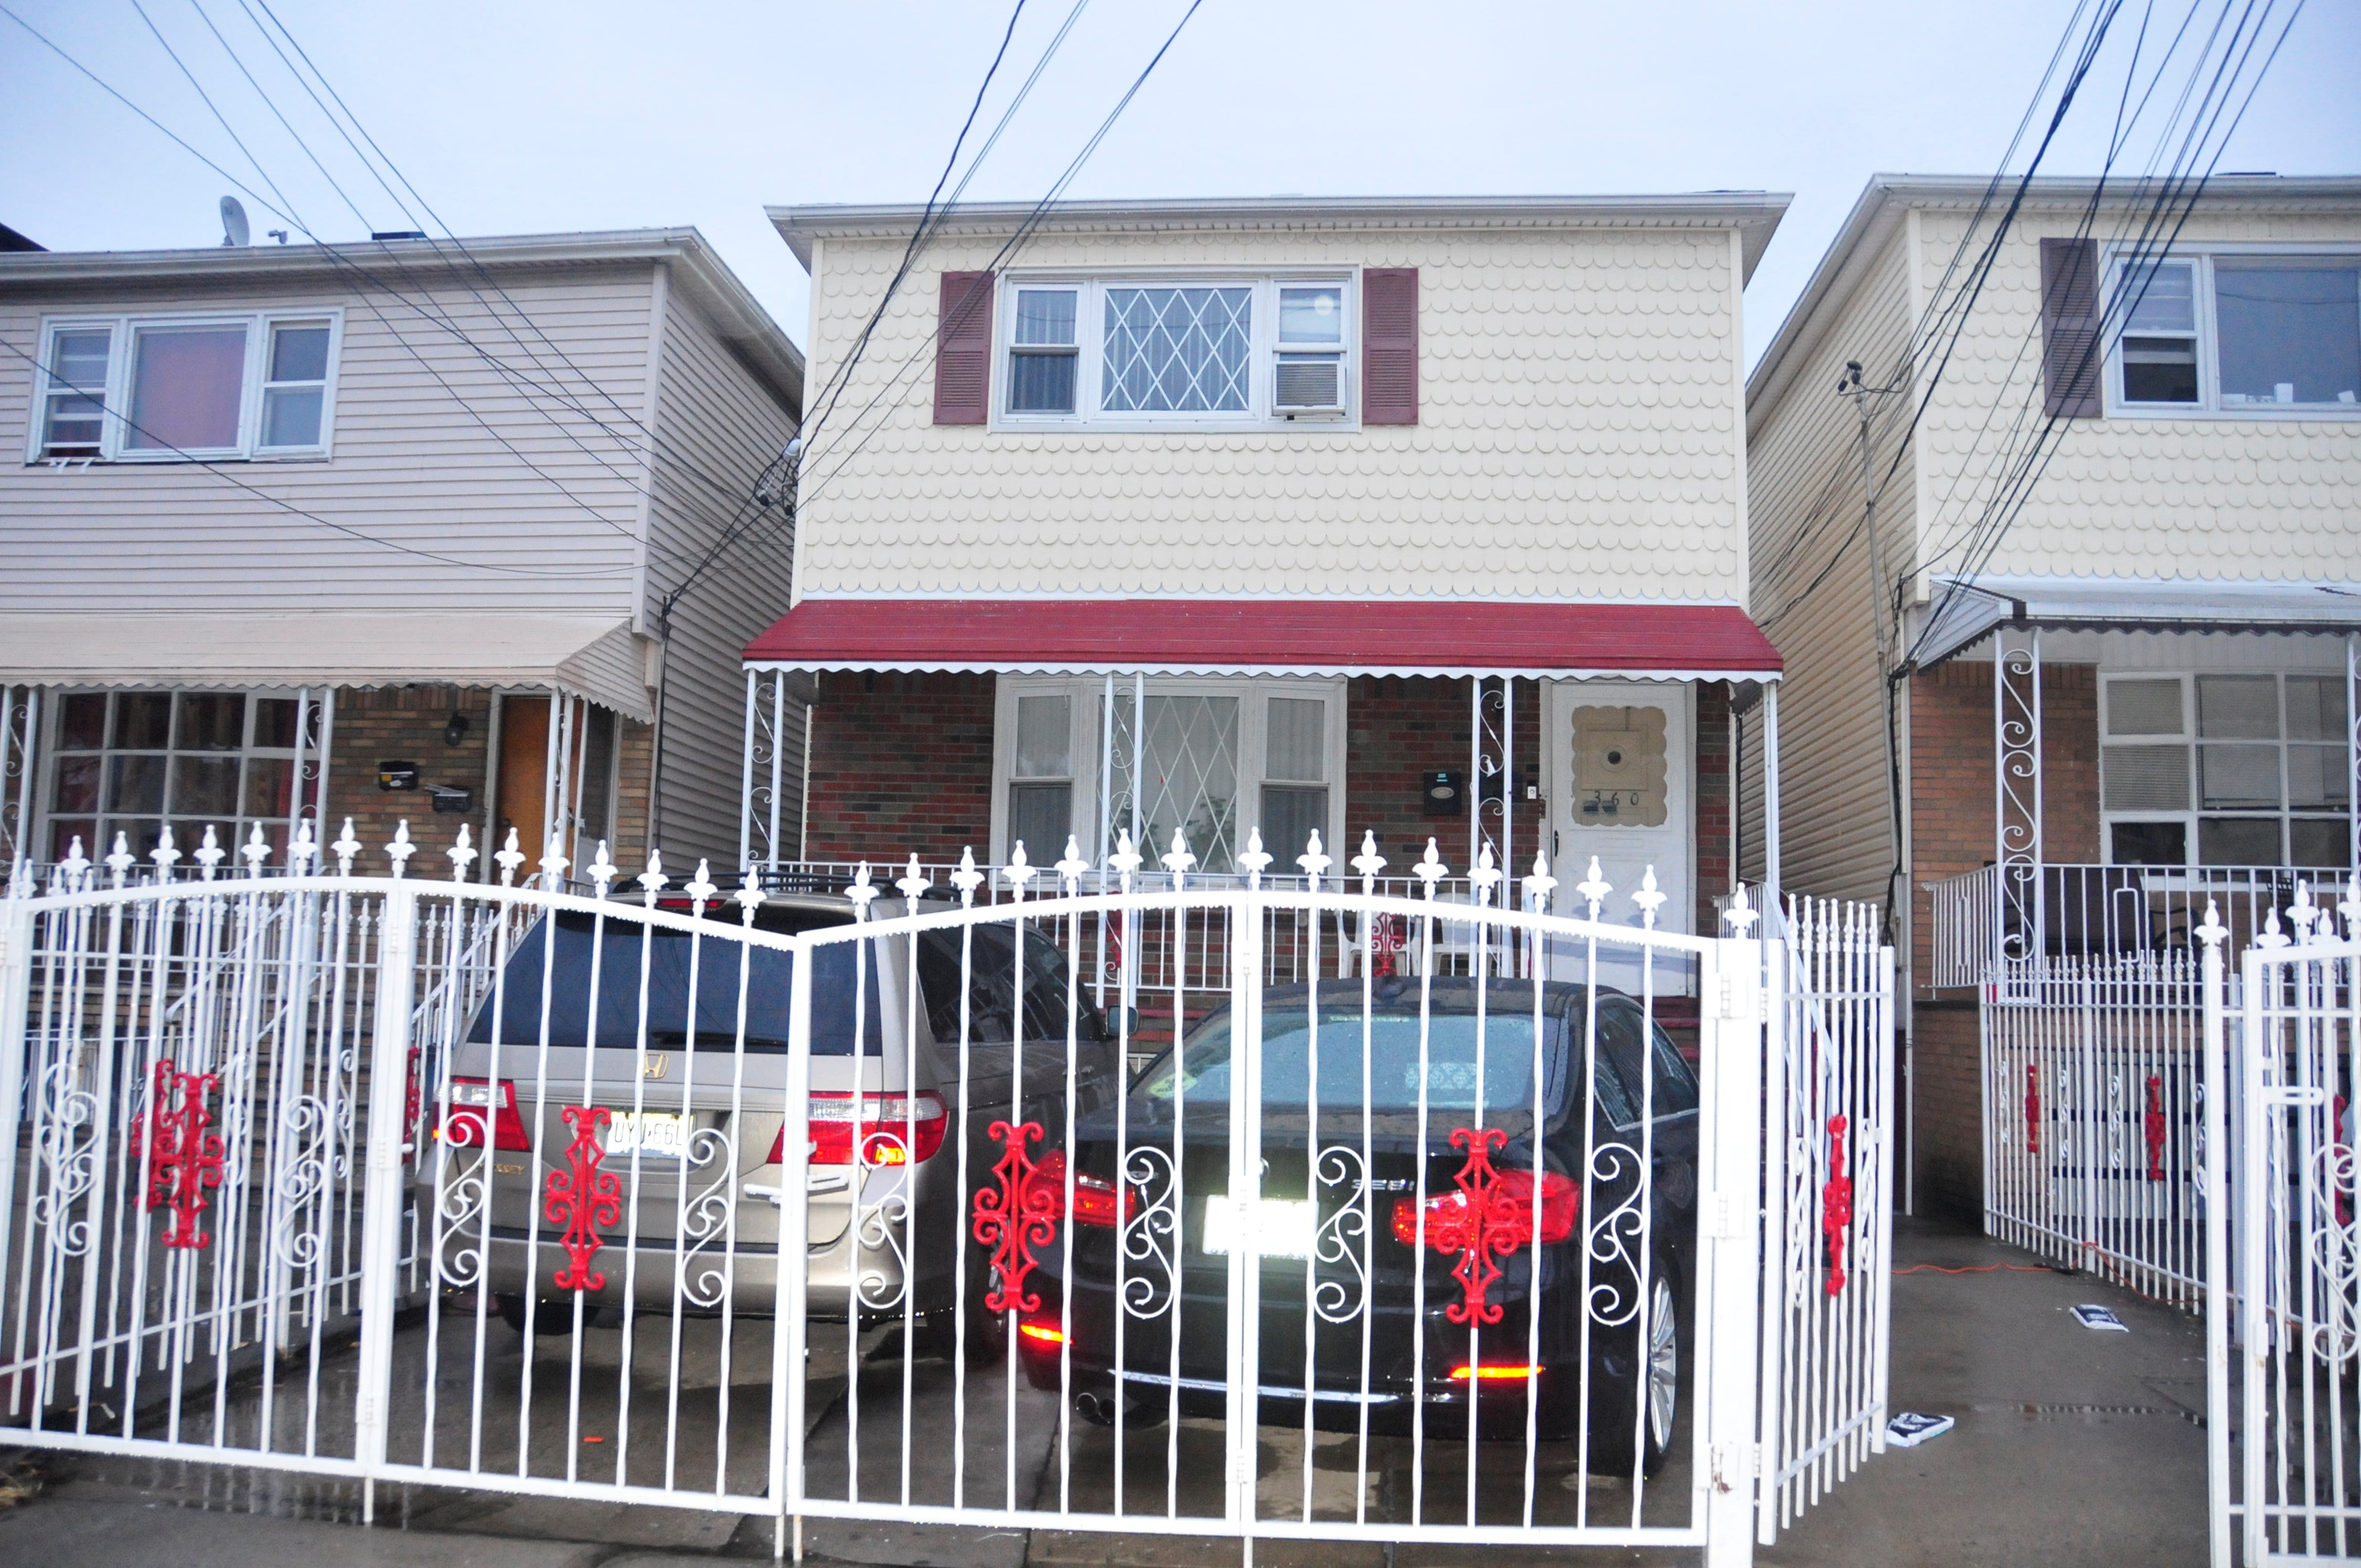 2 Bedroom Apartment To Rent In Jersey City Nj Two Bedroom Apartment 2bhk Flats Rentals